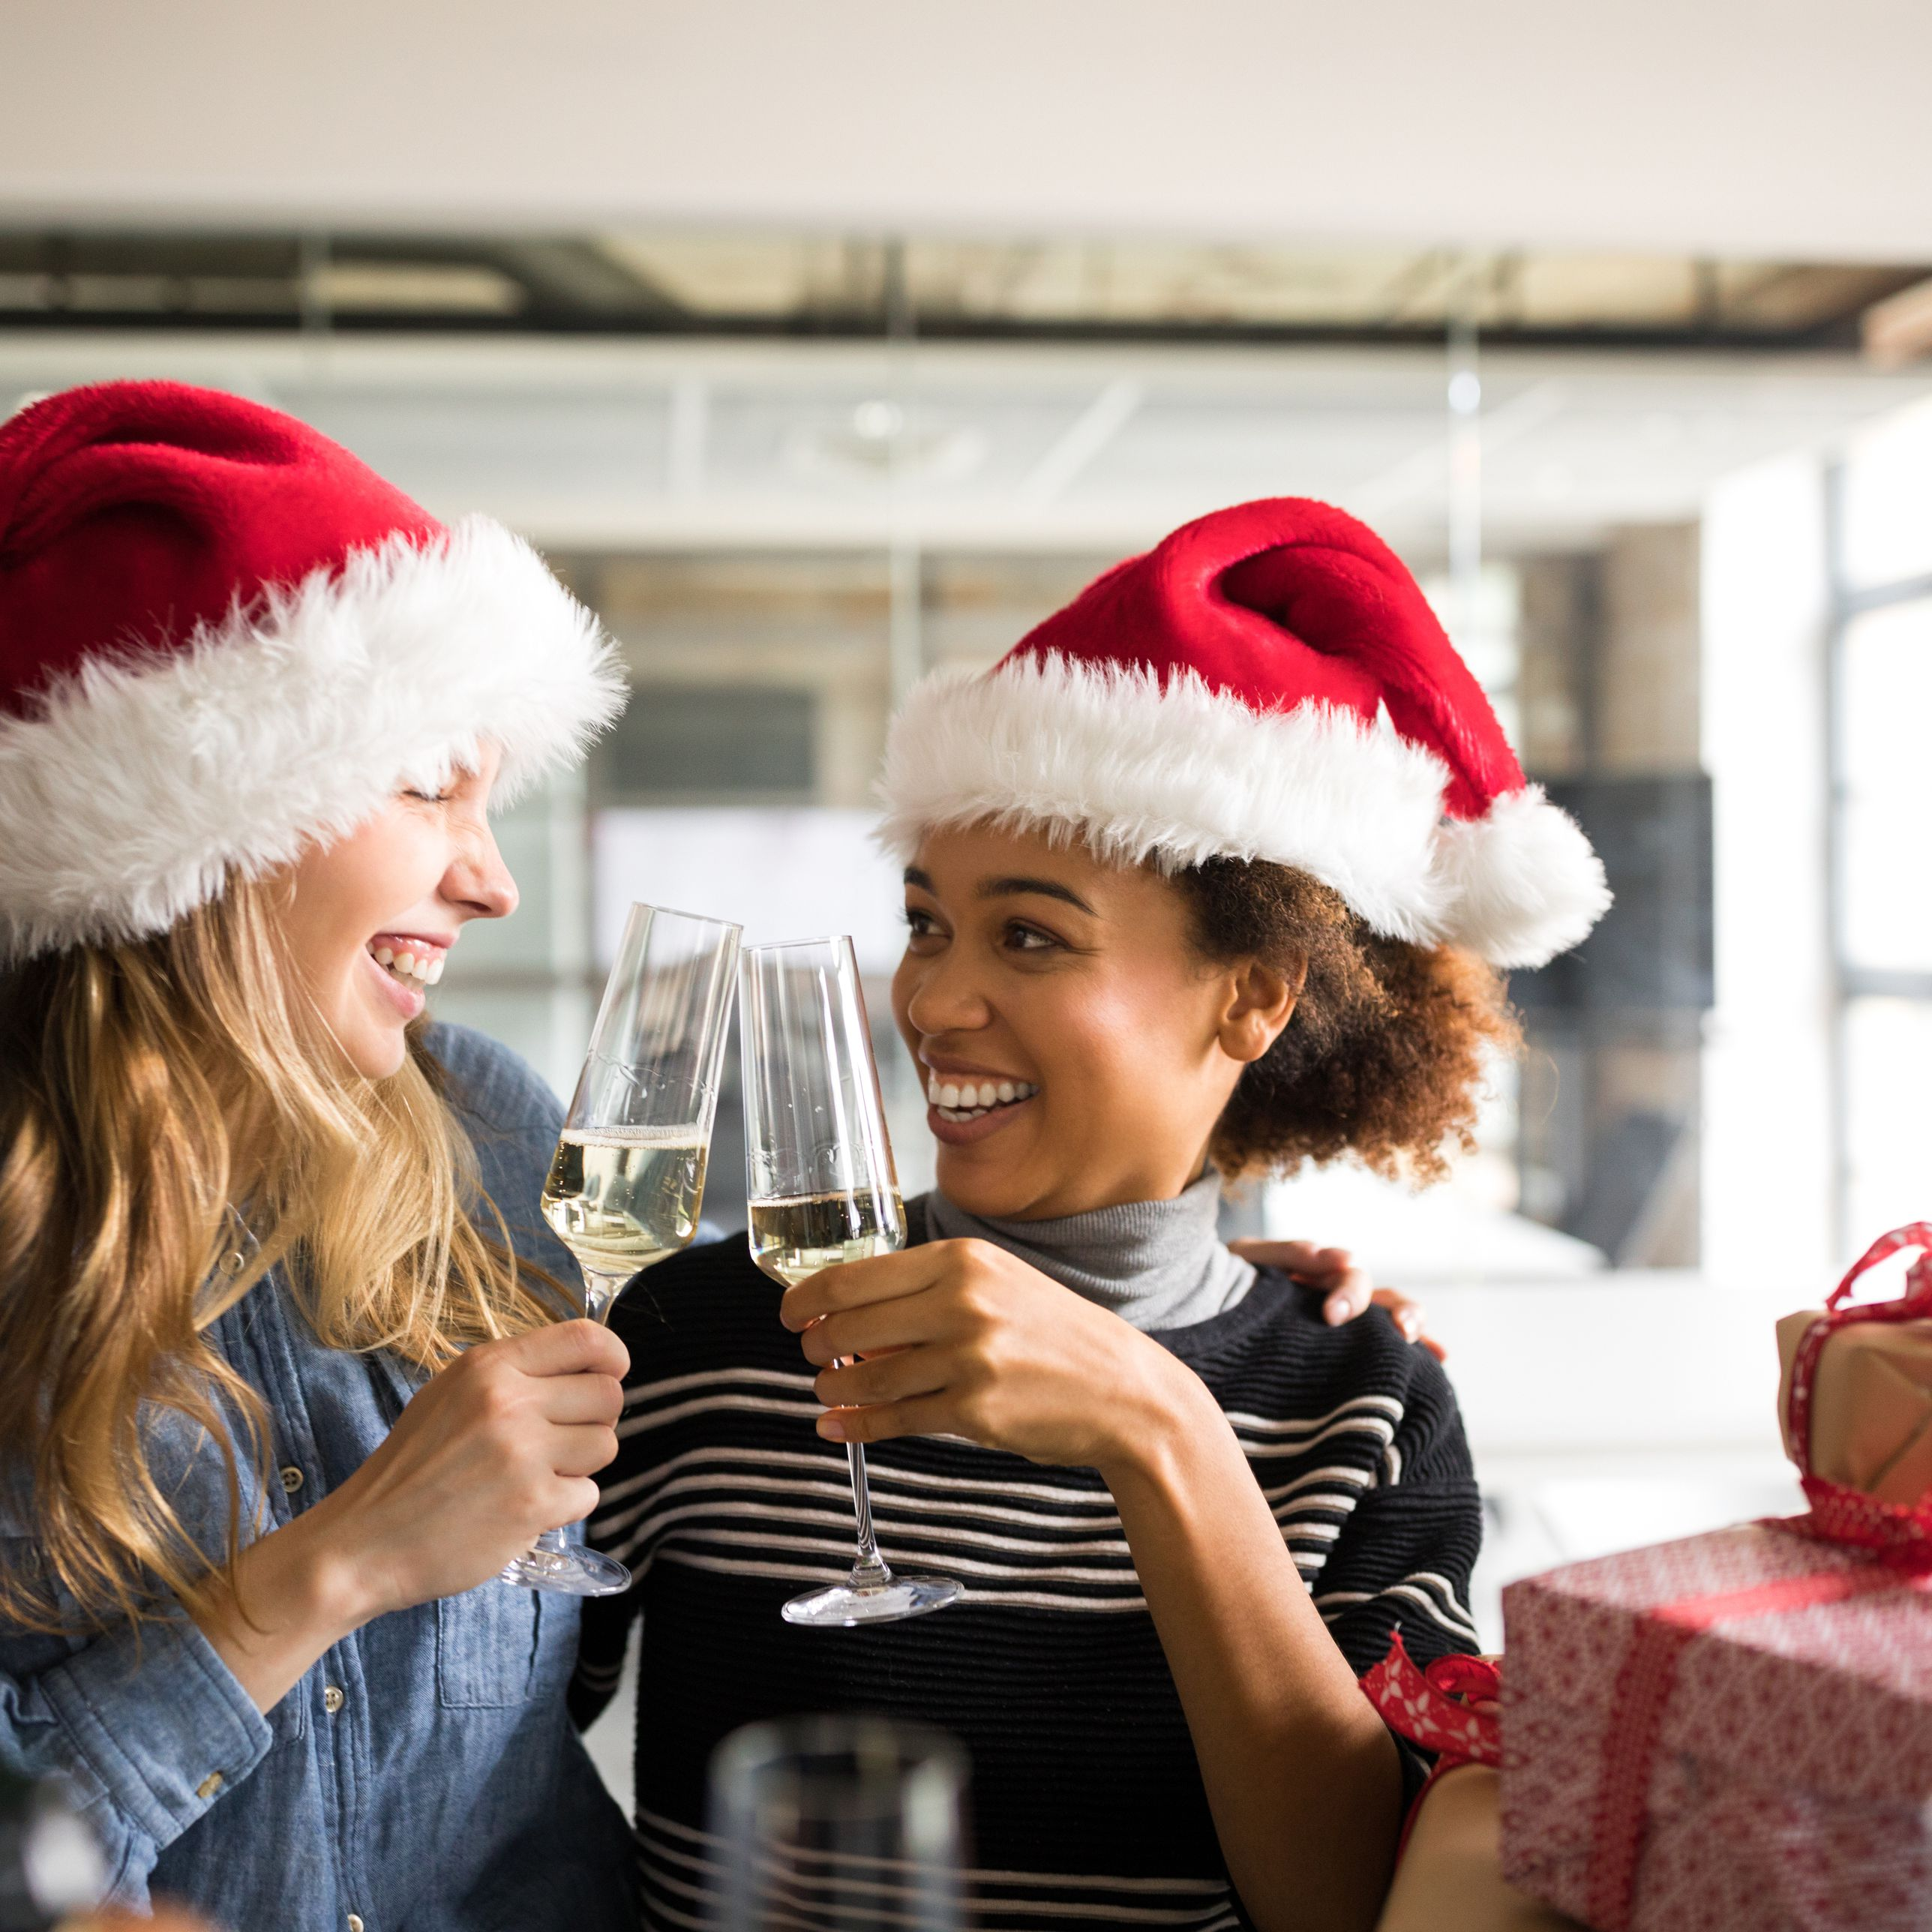 a72e83e6a4a24 10 Tips for Planning Your Employee Holiday Party